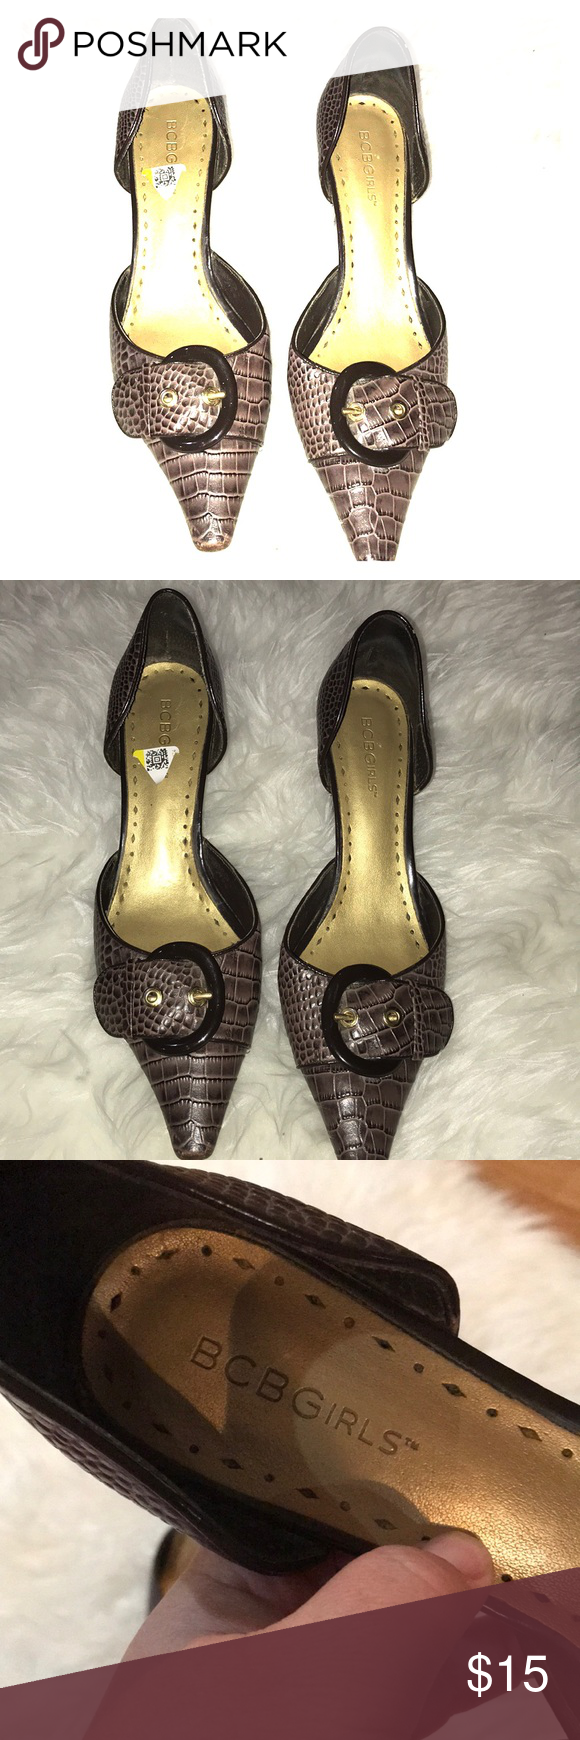 Bcbg Kitten Heel In Brown Alligator With Buckle Fun Heels Work Heels Shoes Women Heels